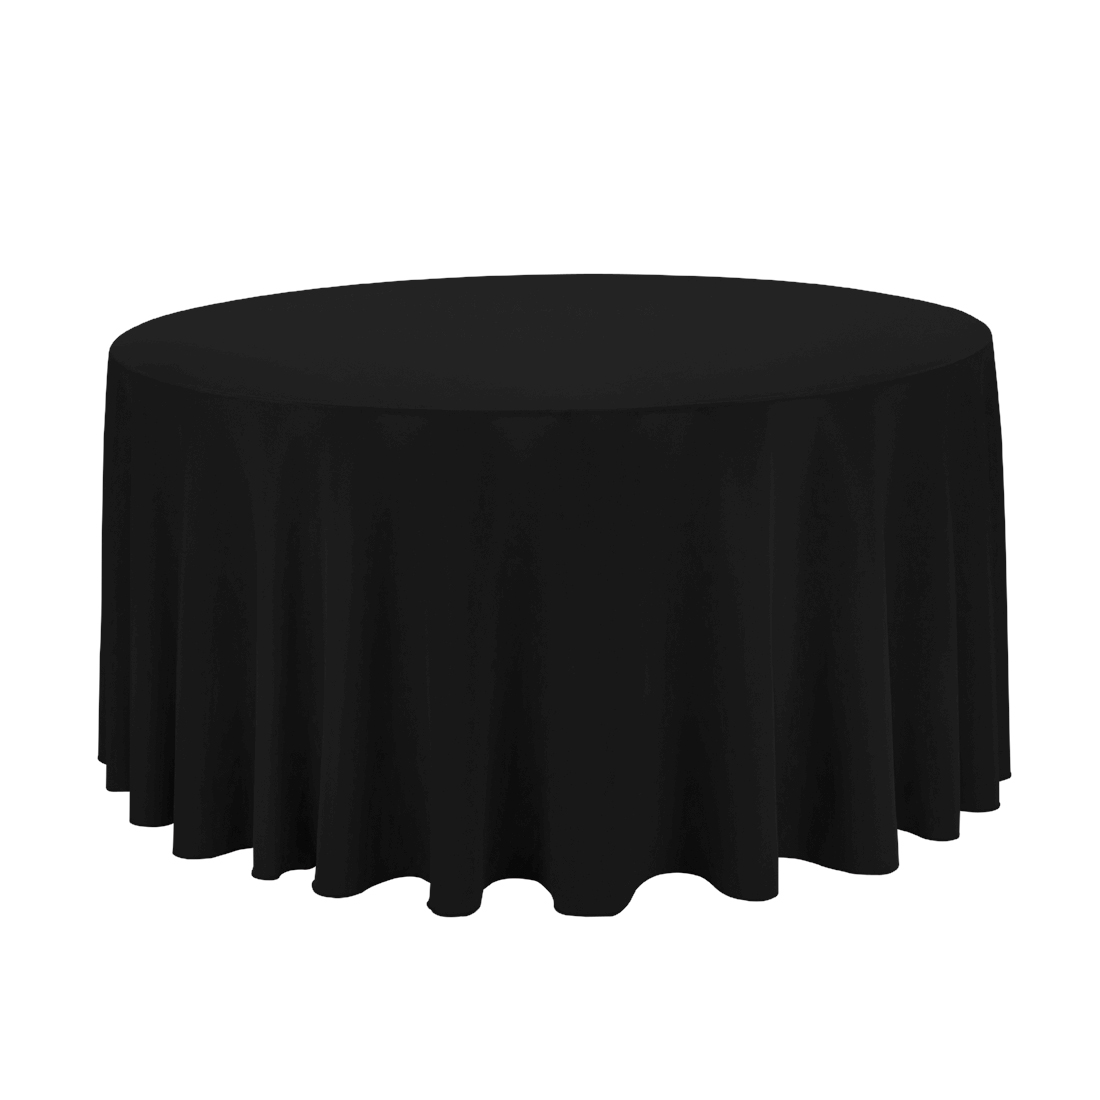 milliken linens signature home tablecloths products cloths table